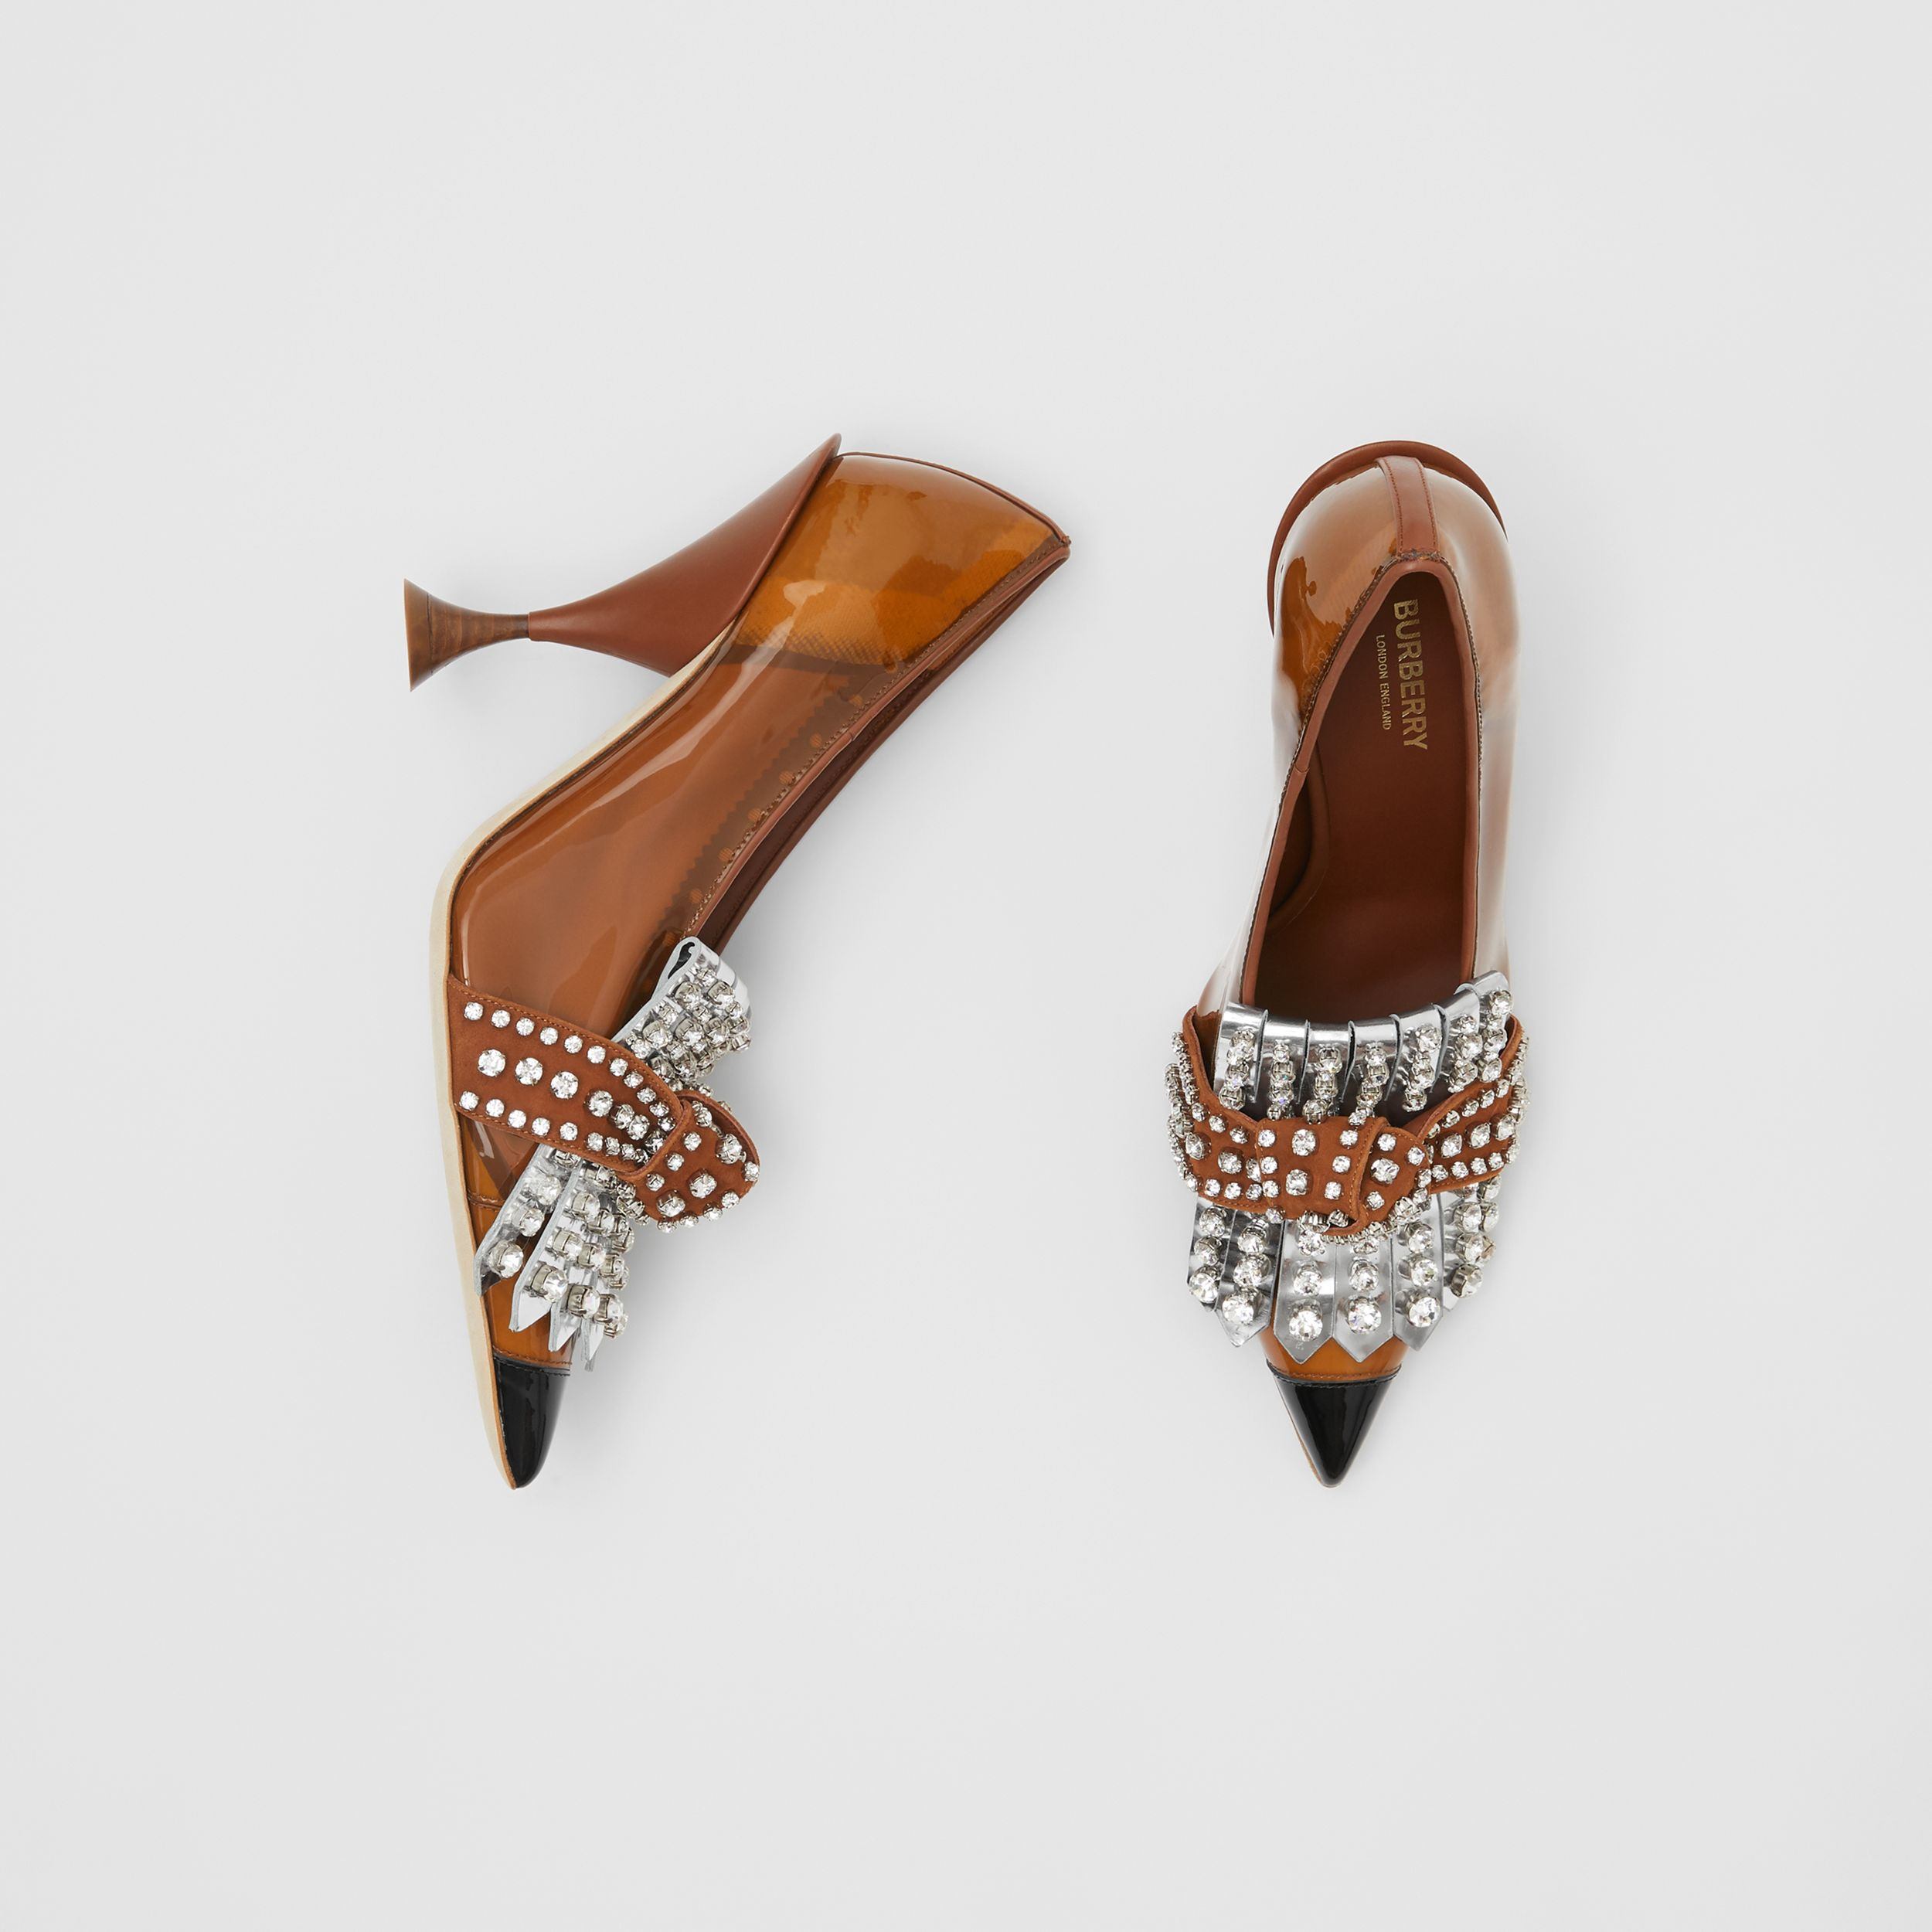 Crystal Kiltie Fringe Vinyl and Leather Point-toe Pumps in Malt Brown/black - Women | Burberry - 1